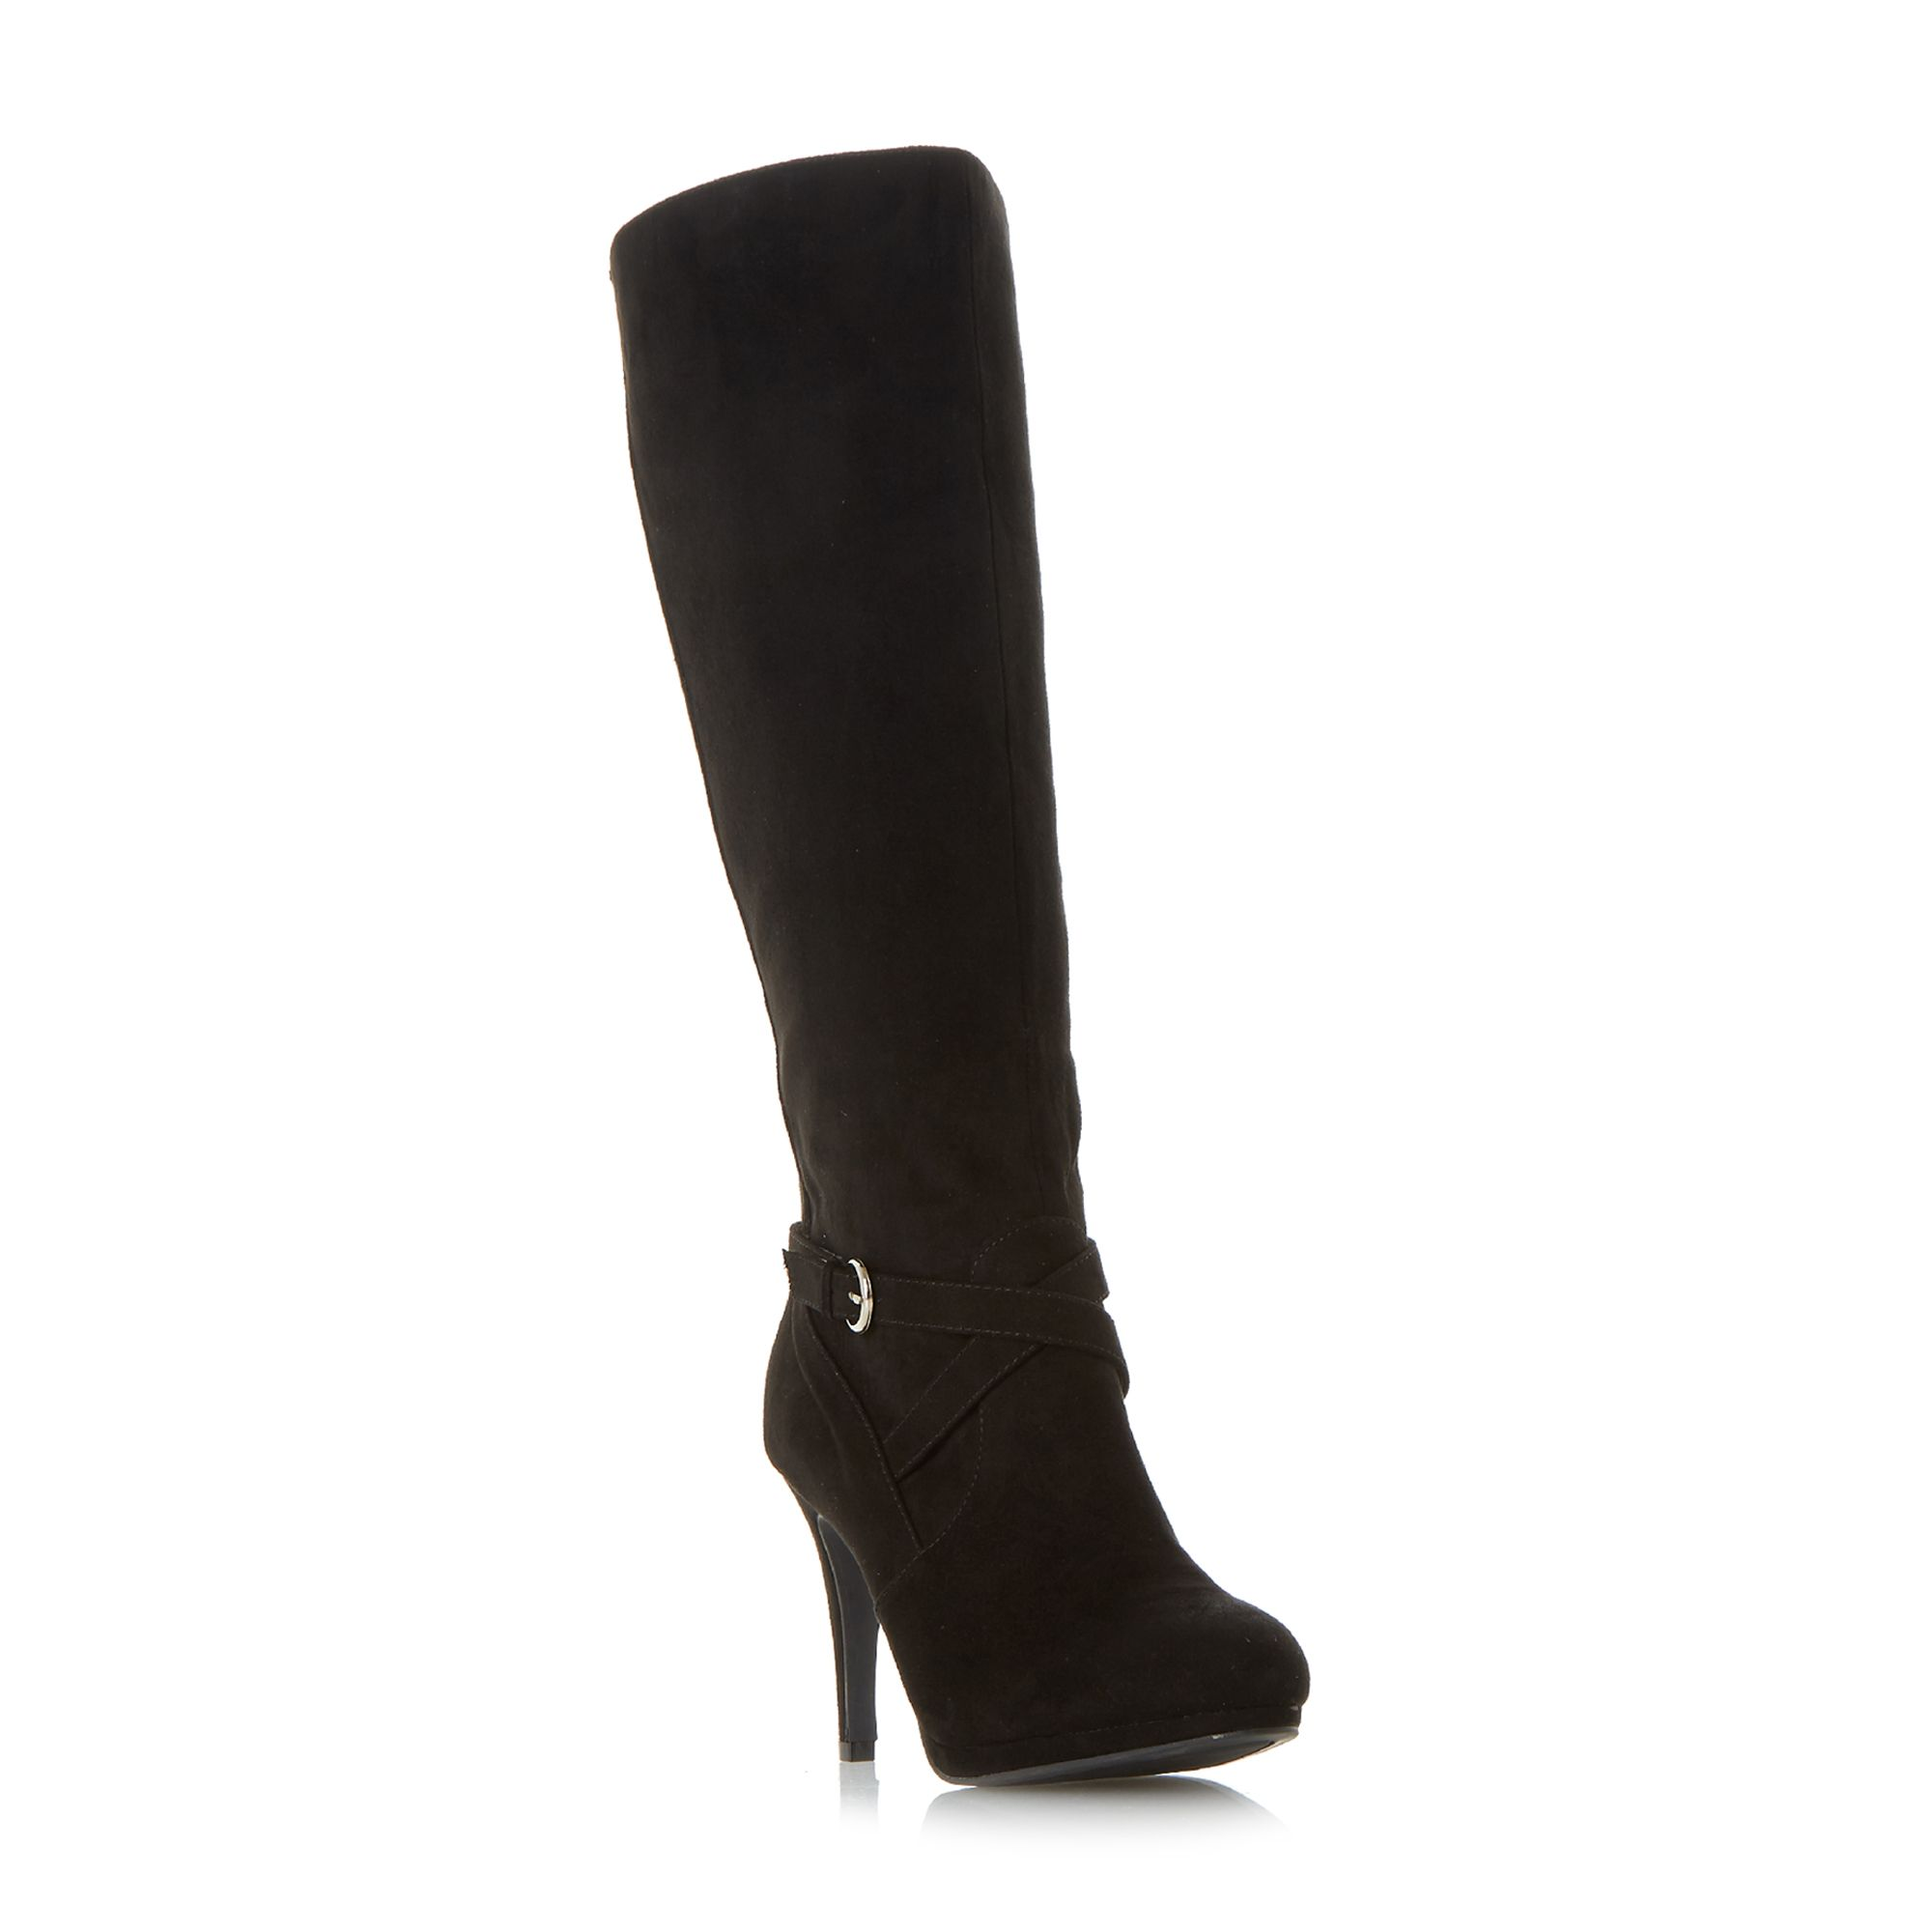 Click to view product details and reviews for Linea Symphony Strap Detail Platform Boots Black.